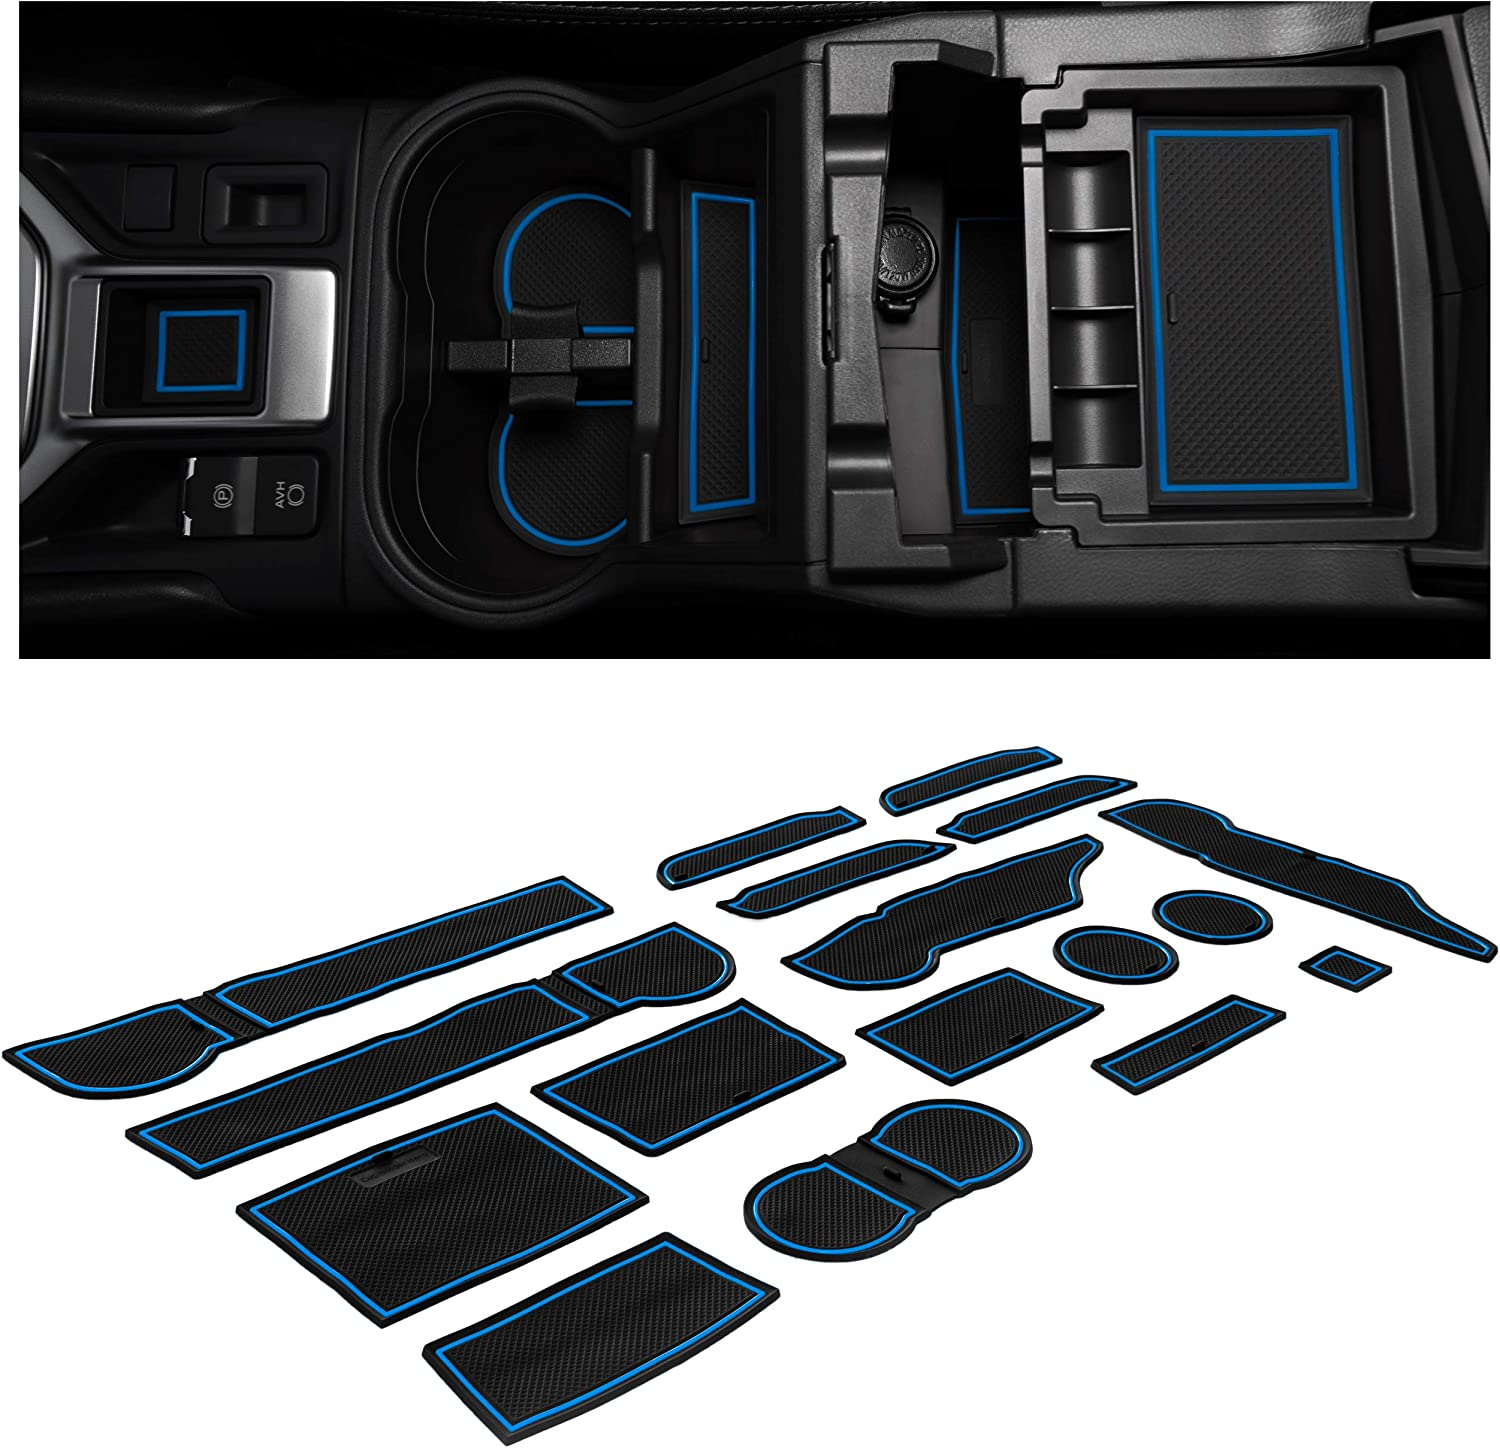 Premium Cup Holder Blue Trim Console and Door Pocket Inserts 17-pc Set CupHolderHero for Subaru Forester 2019-2020 Custom Liner Accessories